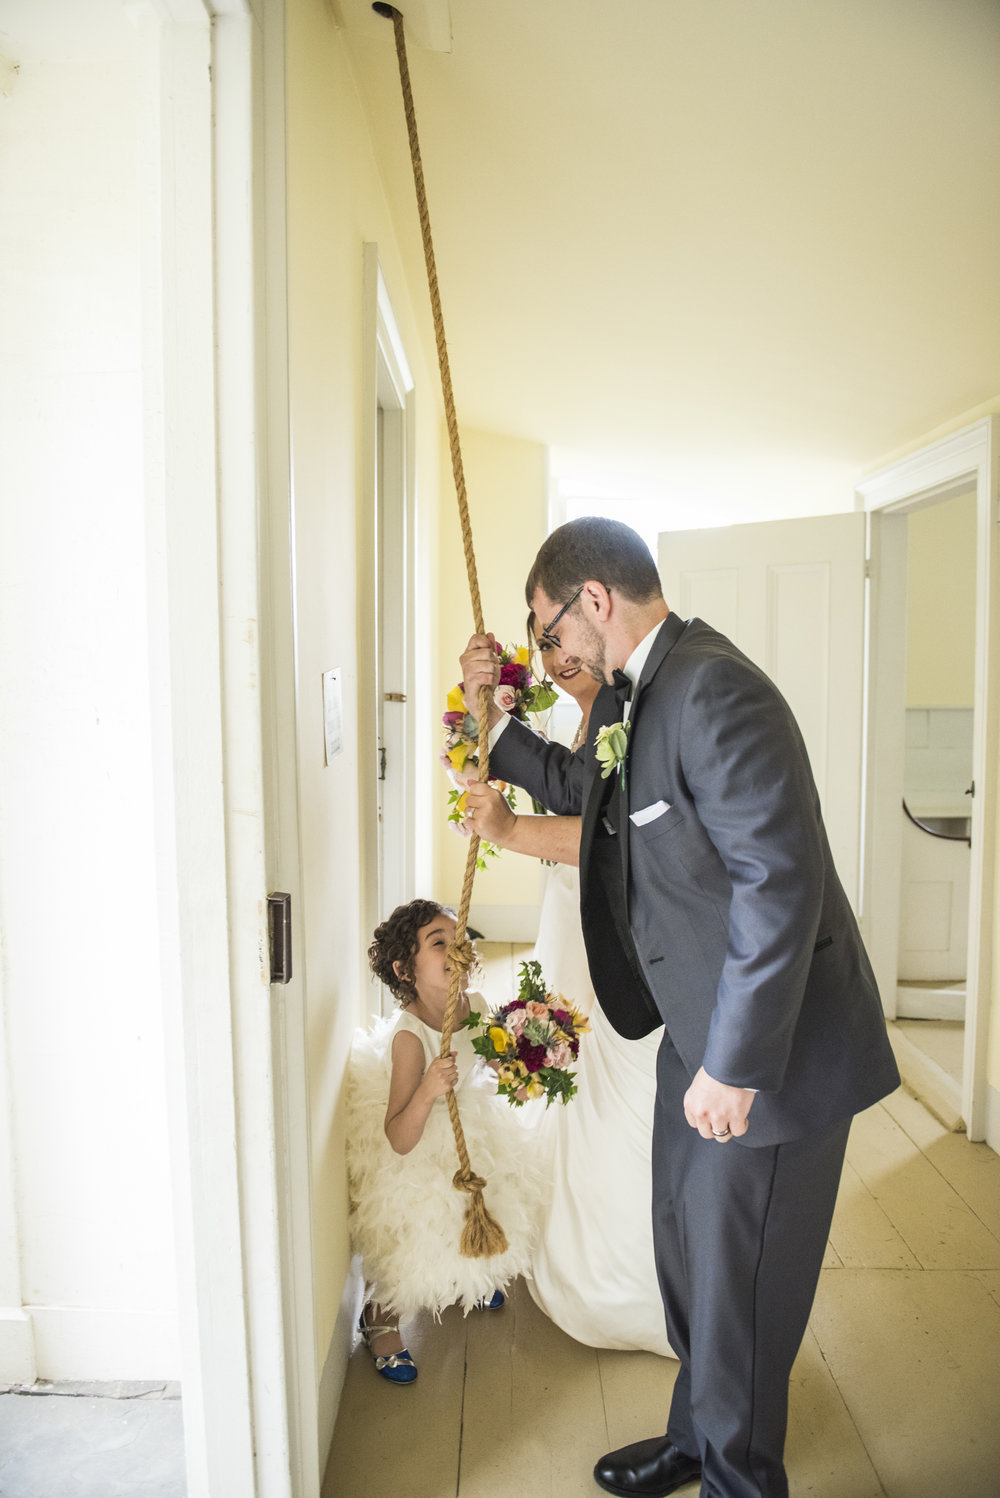 JC-Wedding-Online-Ceremony-128.jpg